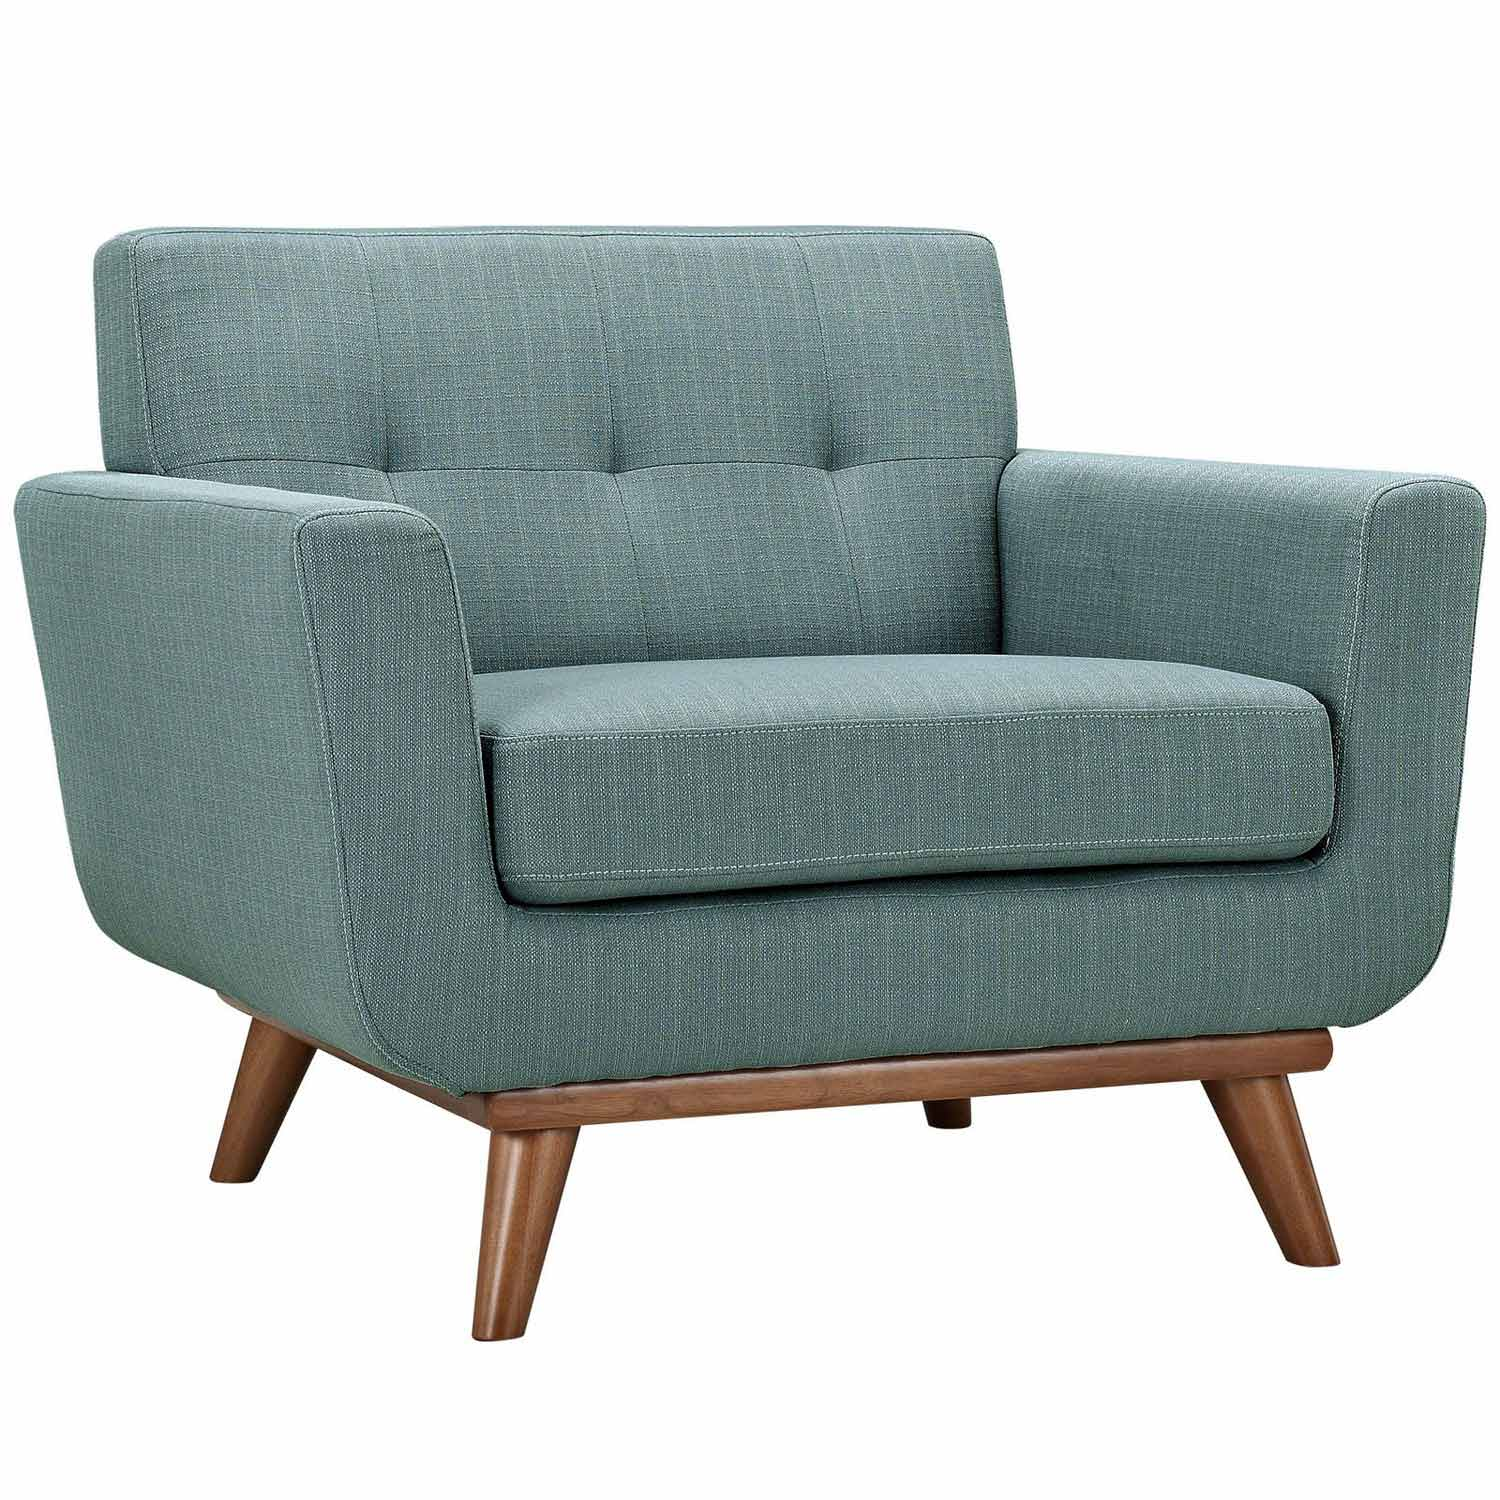 Modway Engage Armchairs and Loveseat Set of 3 - Laguna